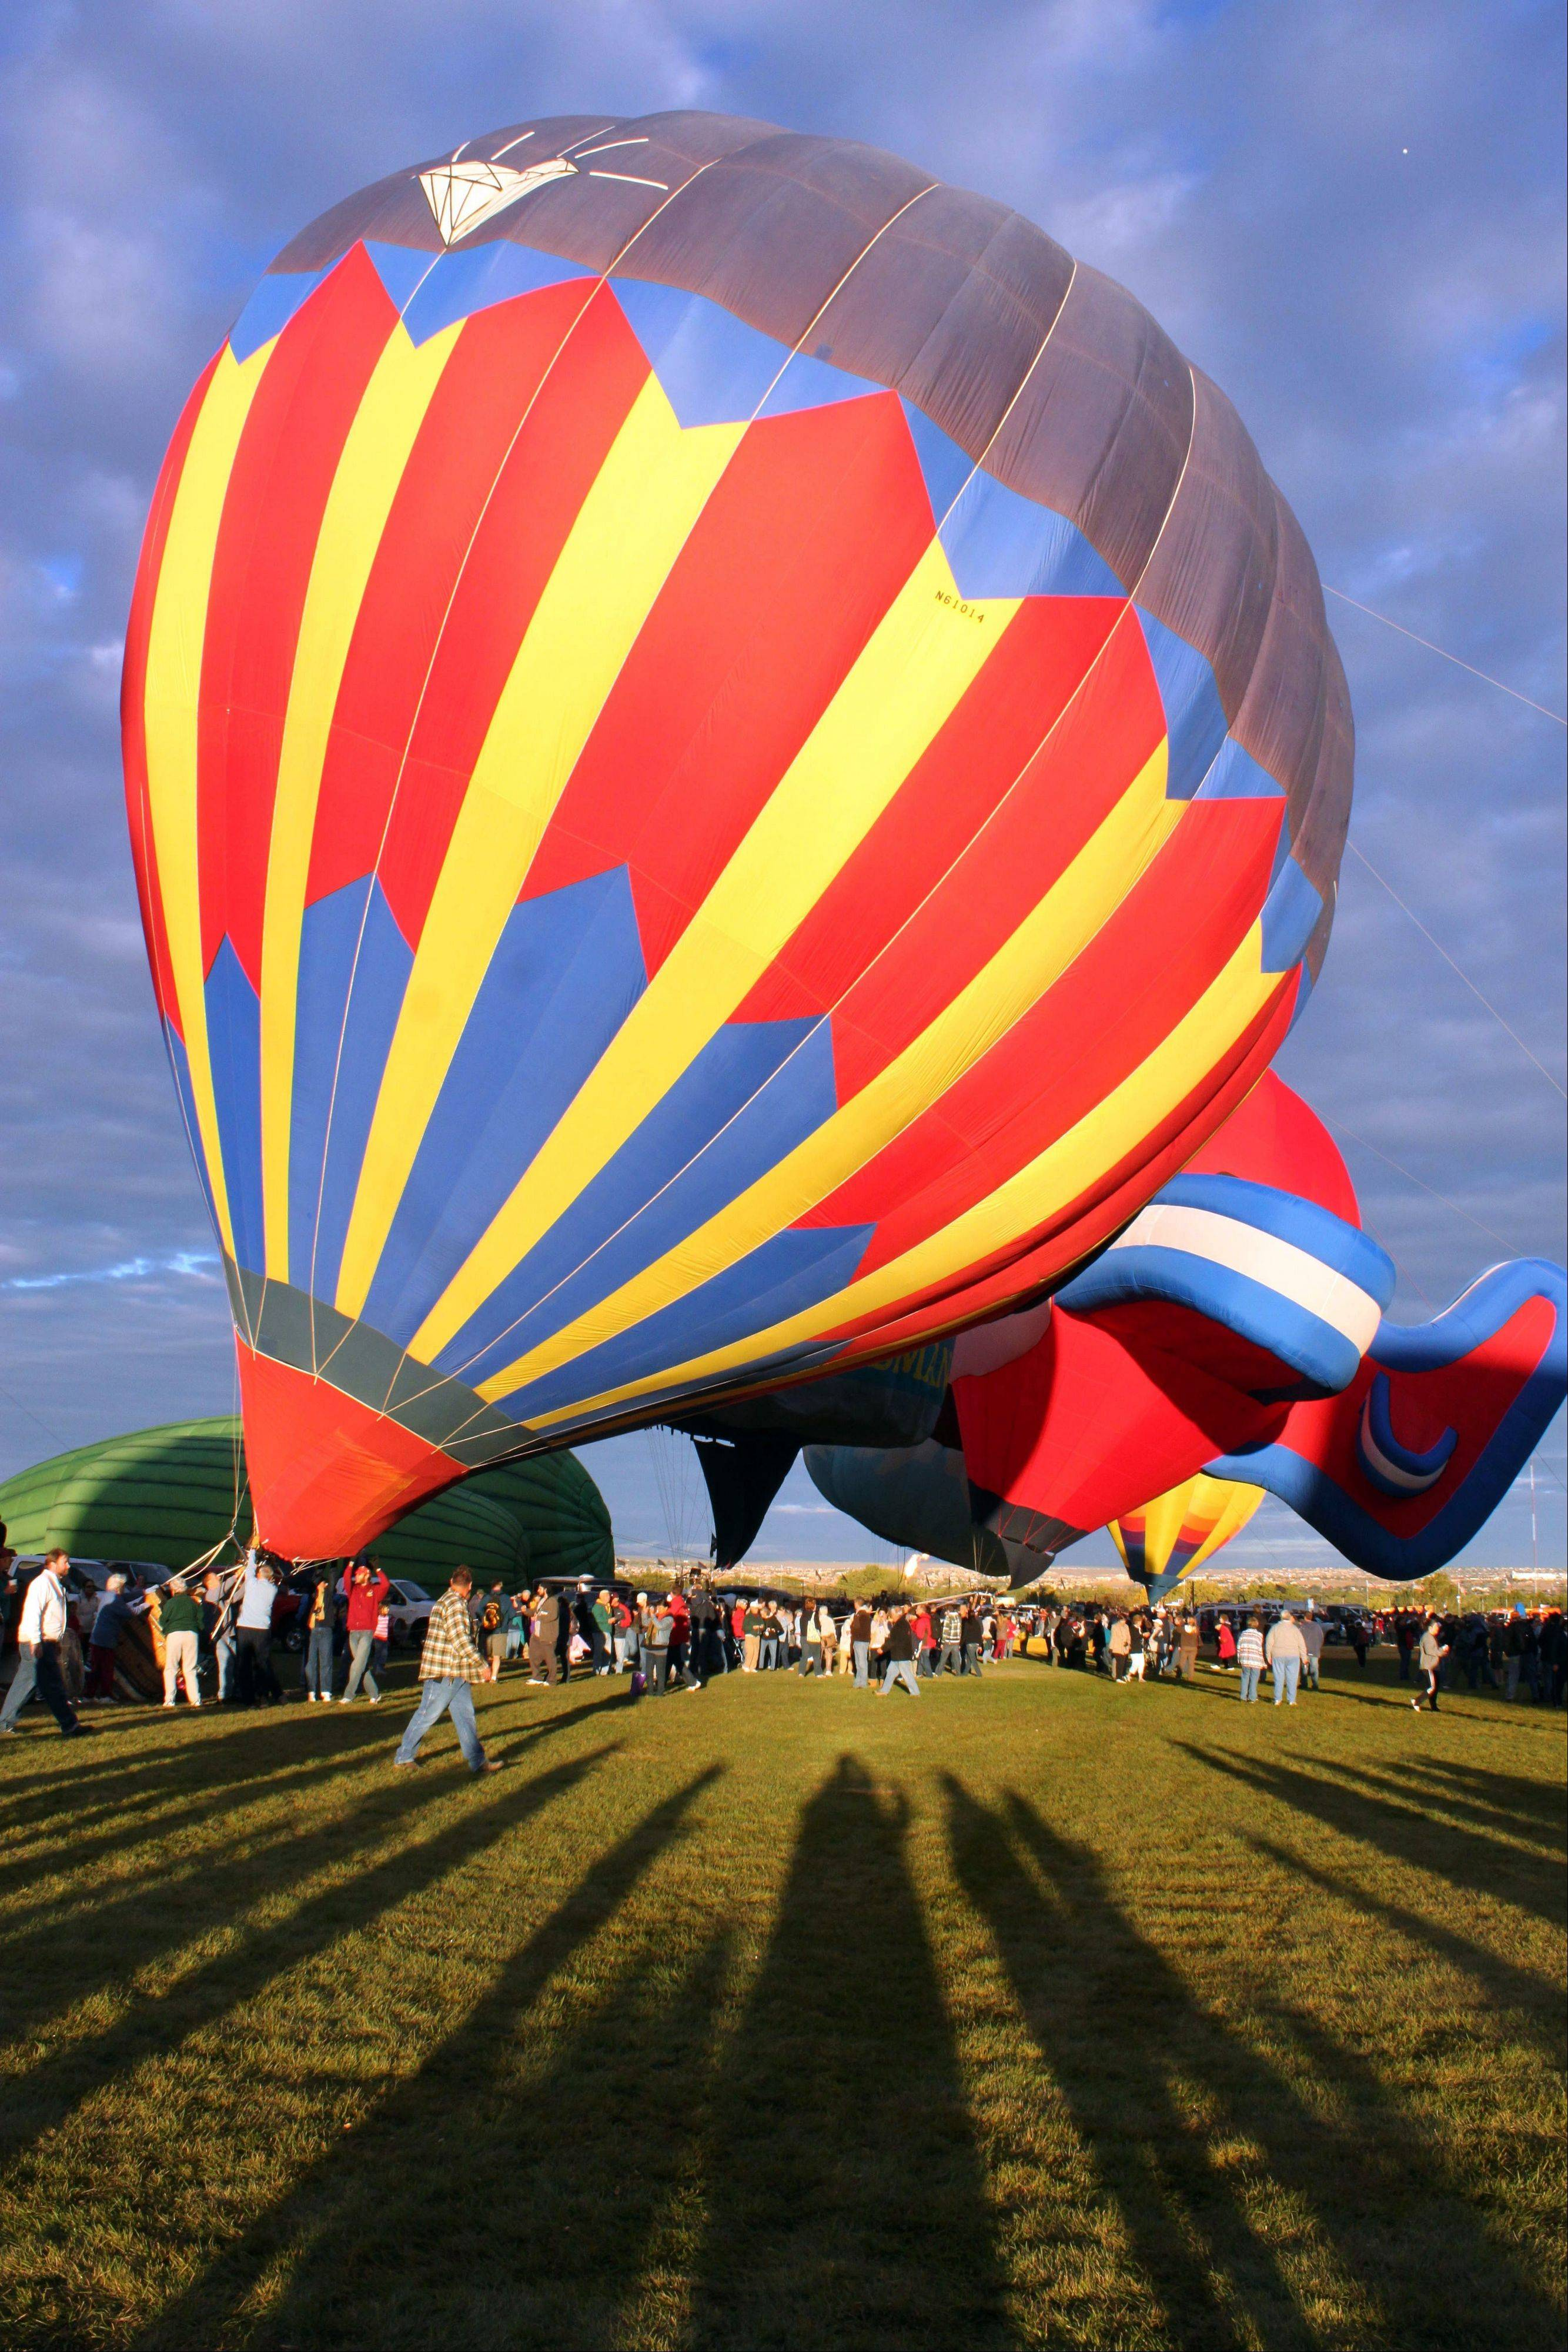 The Albuquerque International Balloon Fiesta in Albuquerque, N.M., can be seen from many vantage points around the city once the balloons lift off. The fest runs Oct. 5-13.